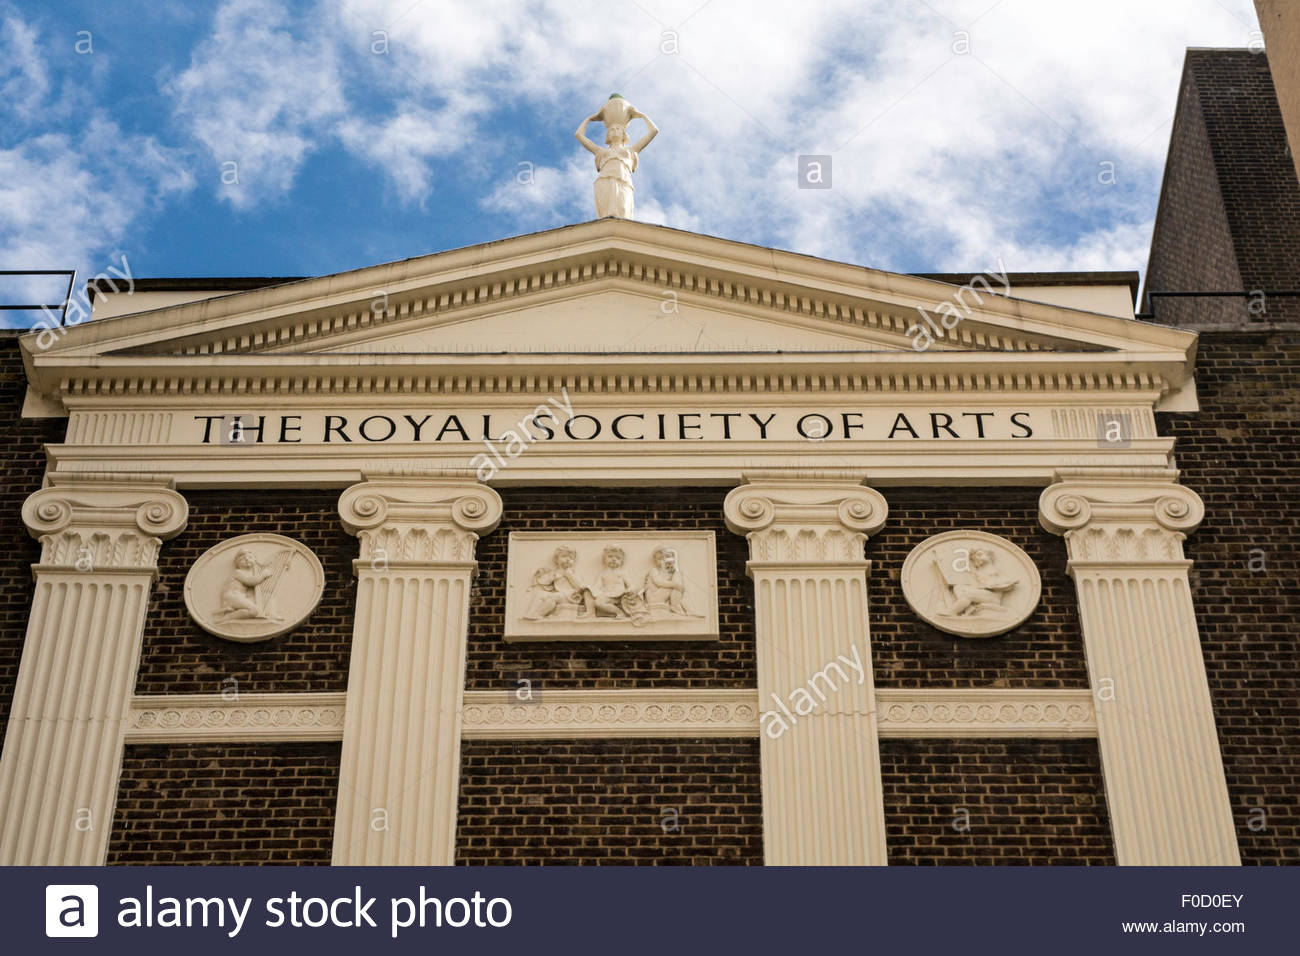 the intelligencia and the royal society of london The society of jesus considers itself the true knight templar continuum, although considering what transpired, the fact that the pope allowed this group to survive and live would actually make a better case for the society of jesus to be the least likely continuum of the true knight templars.